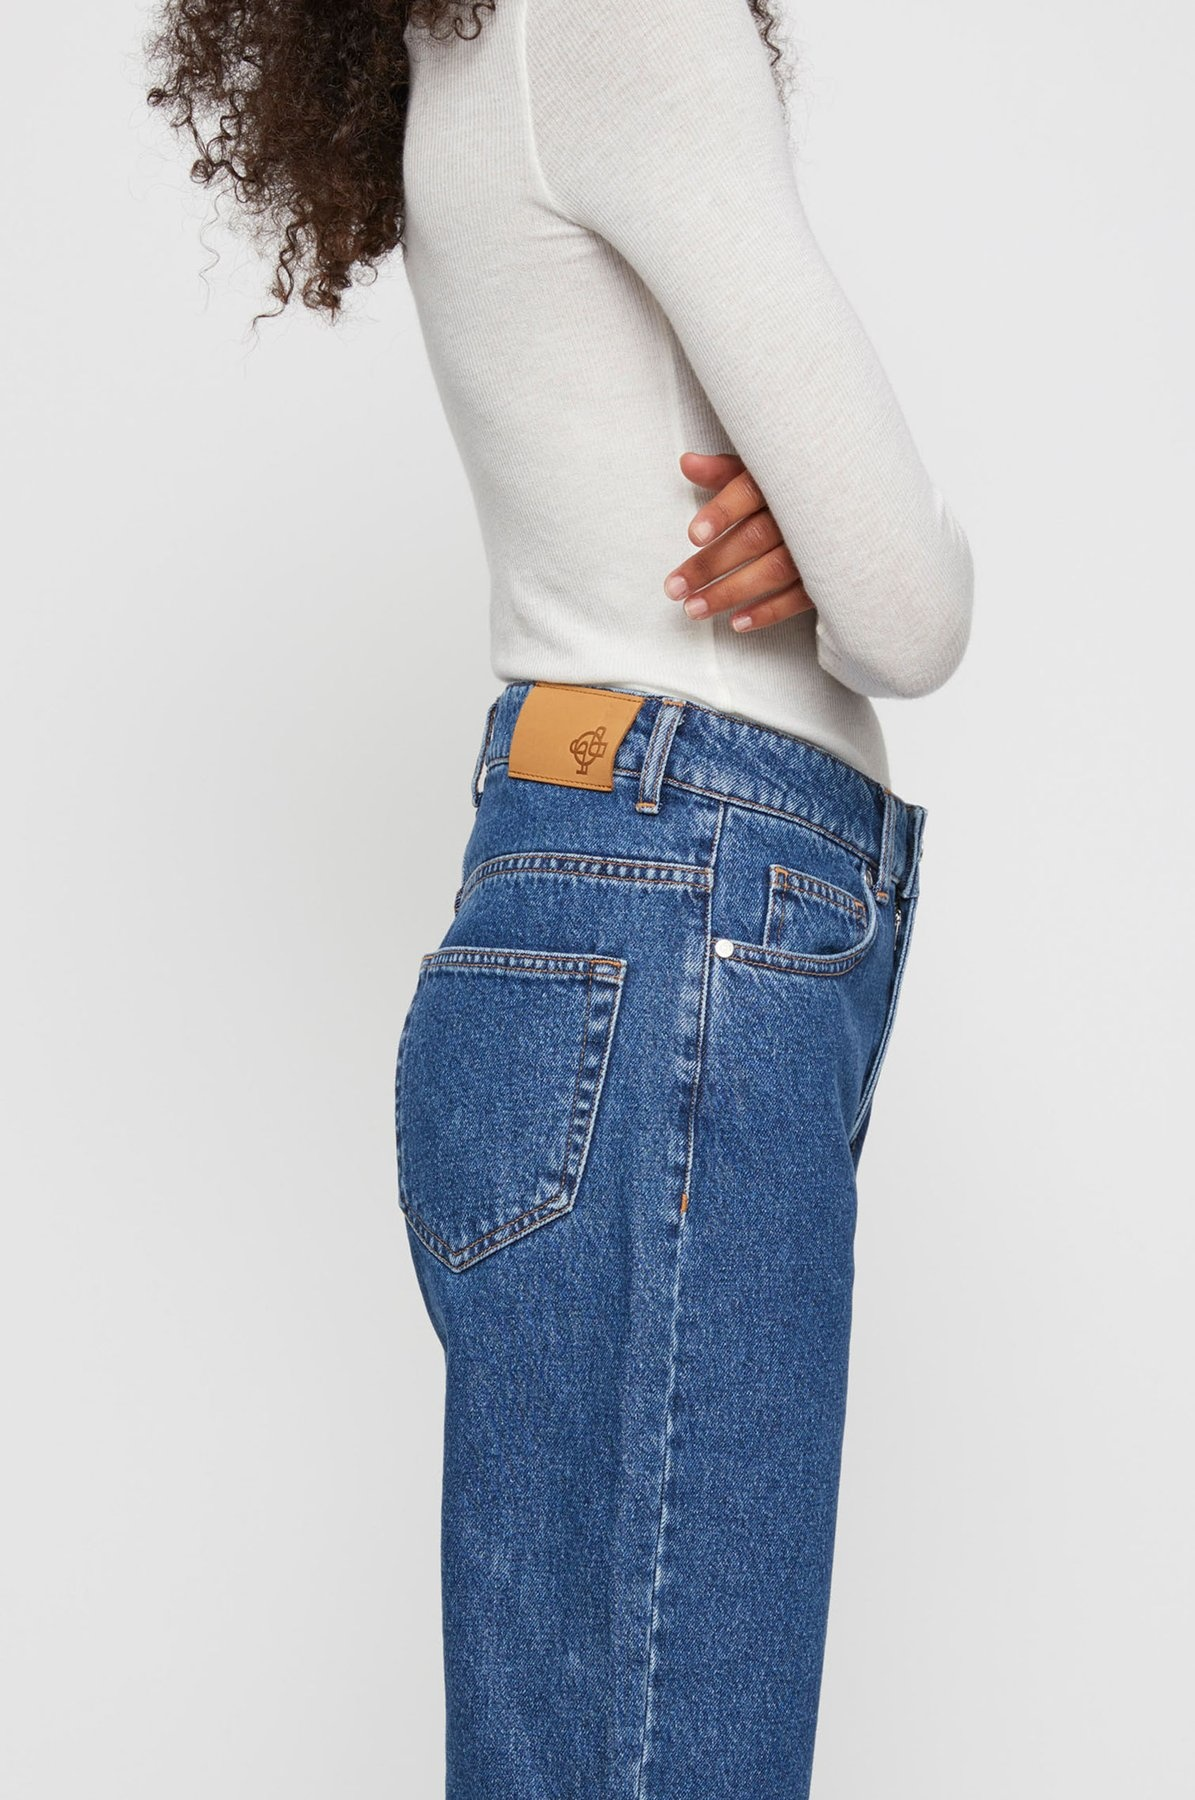 JUST FEMALE jean stormy 0102-3